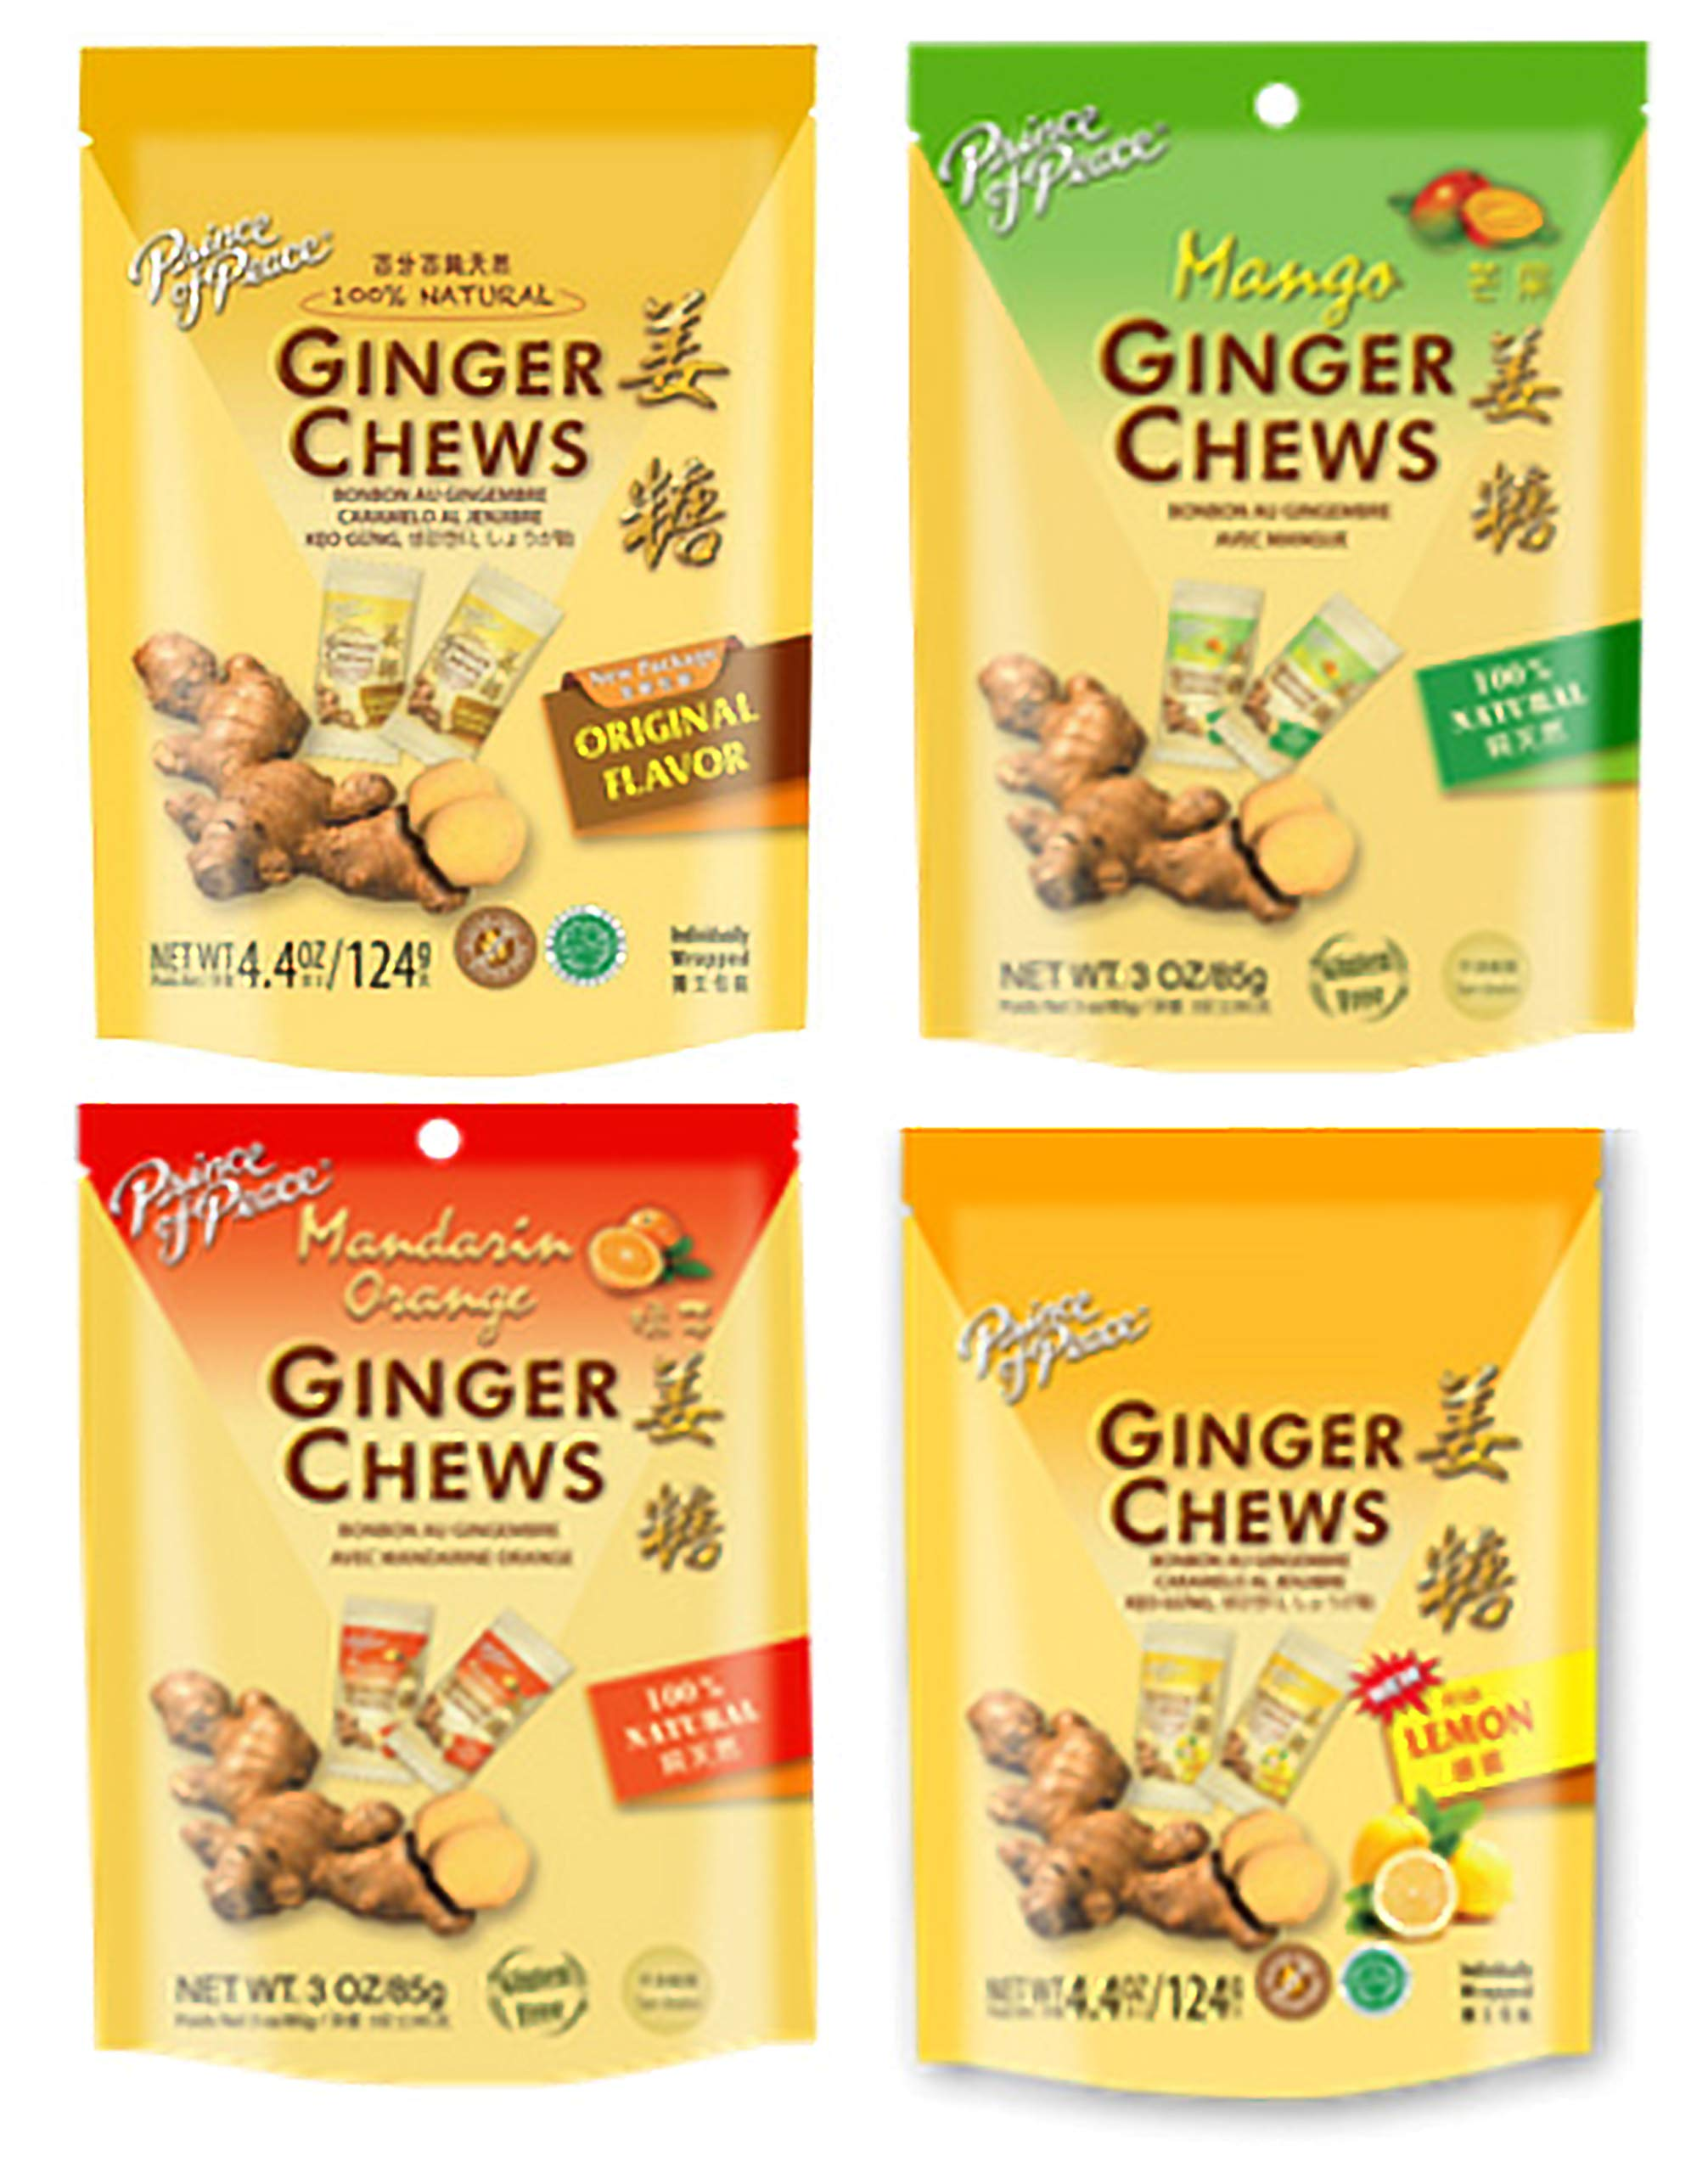 Prince of Peace Ginger Chews Pack of Assorted Flavors